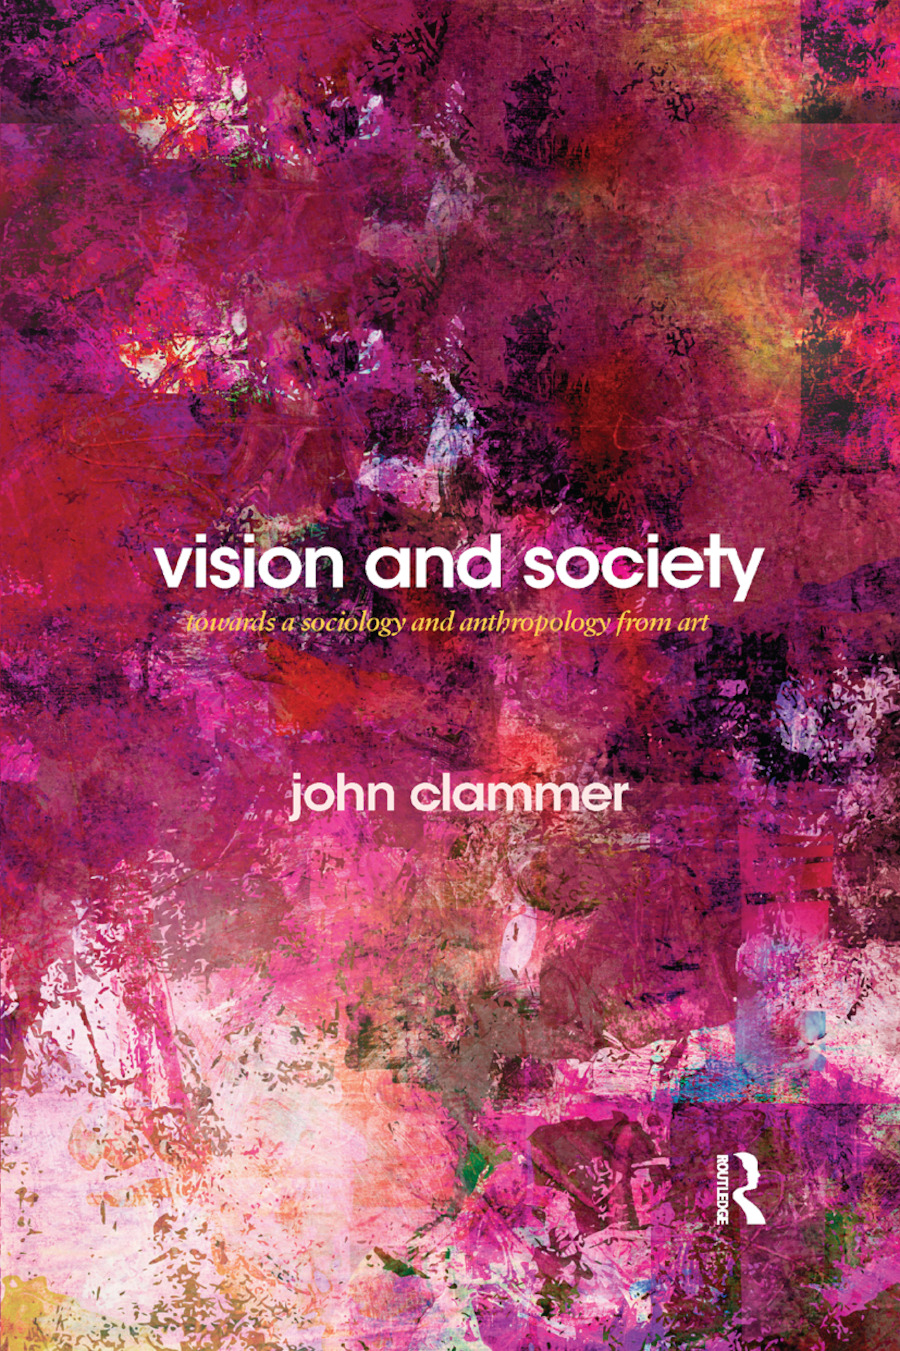 Vision and Society: Towards a Sociology and Anthropology from Art book cover